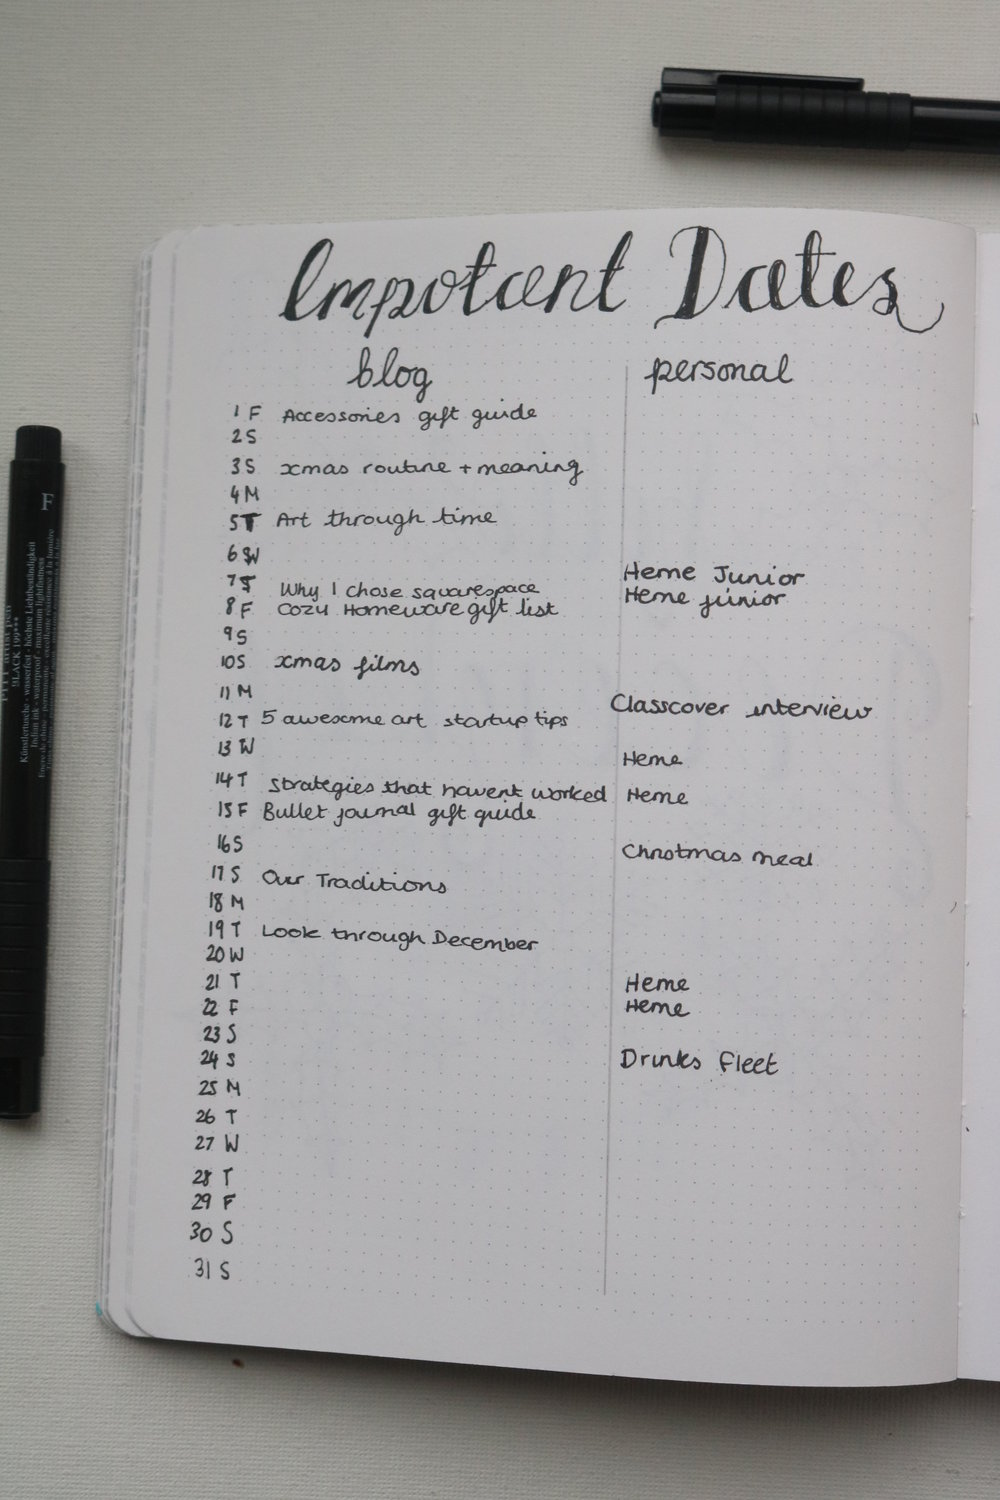 Monthly Pages - I decided to do a list format this month with a list of blog ideas and when they should be published and then a personal/work side where I put any appointements, interviews or social events I needed to go to.